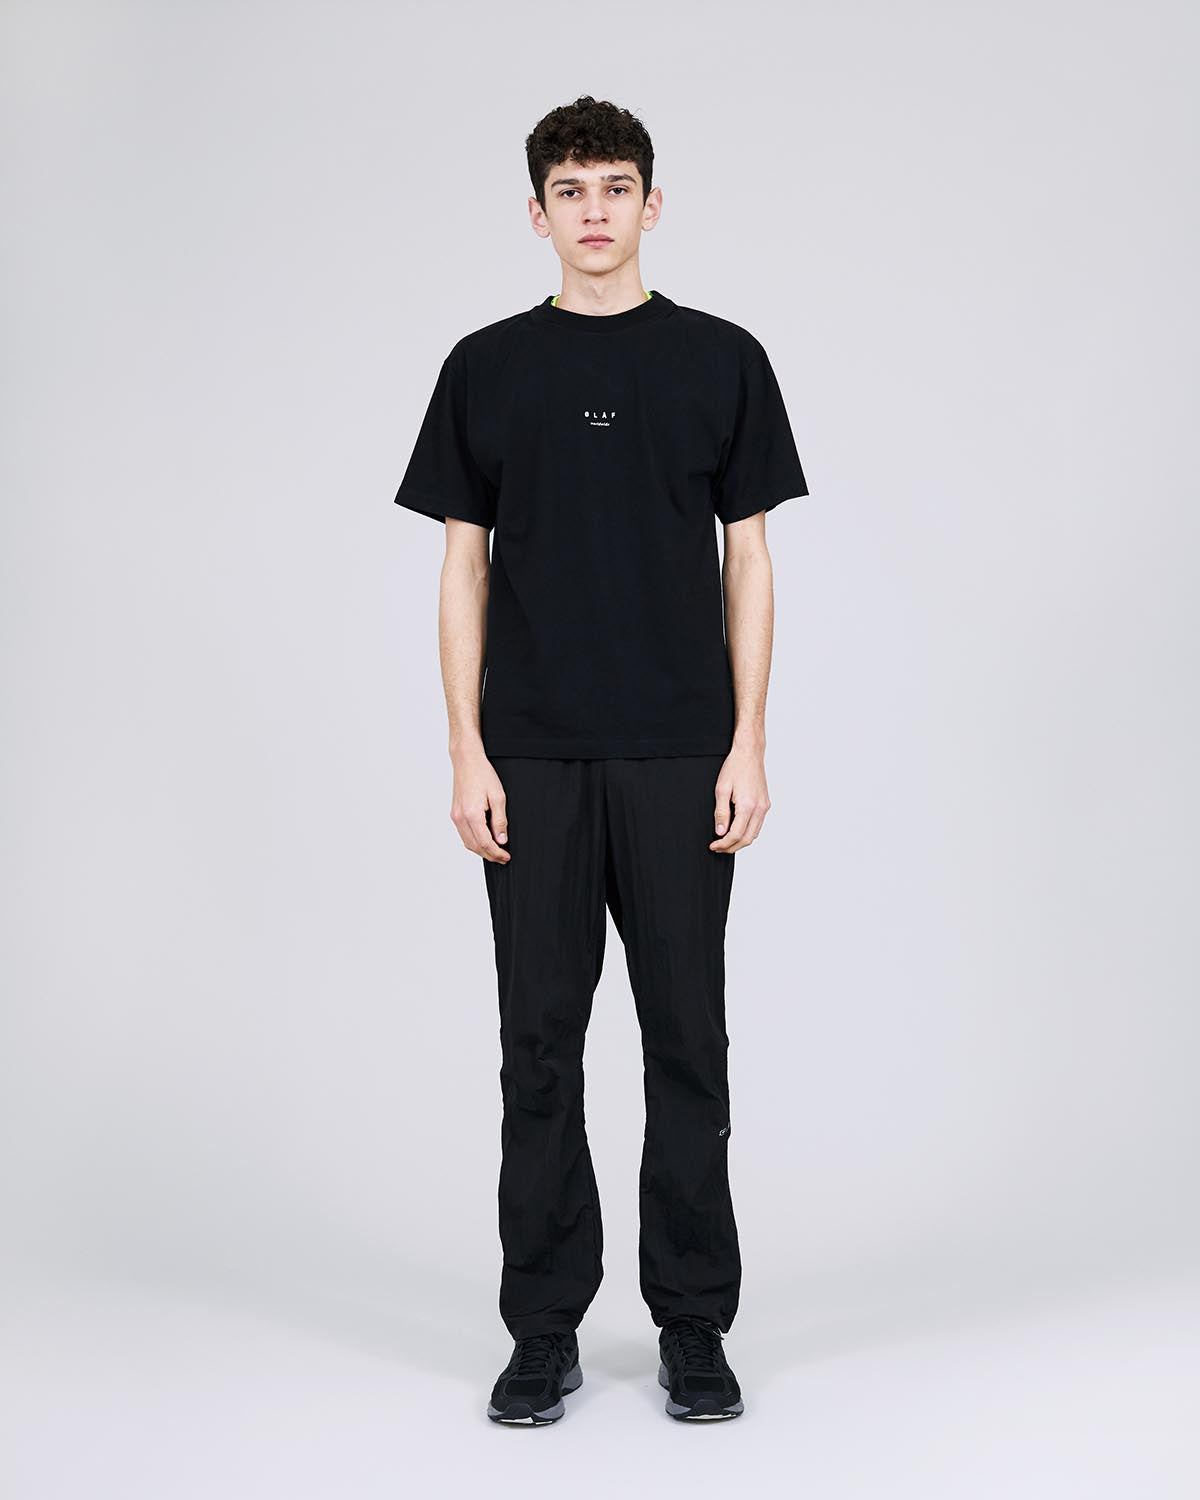 ØLÅF Worldwide T <br>Black